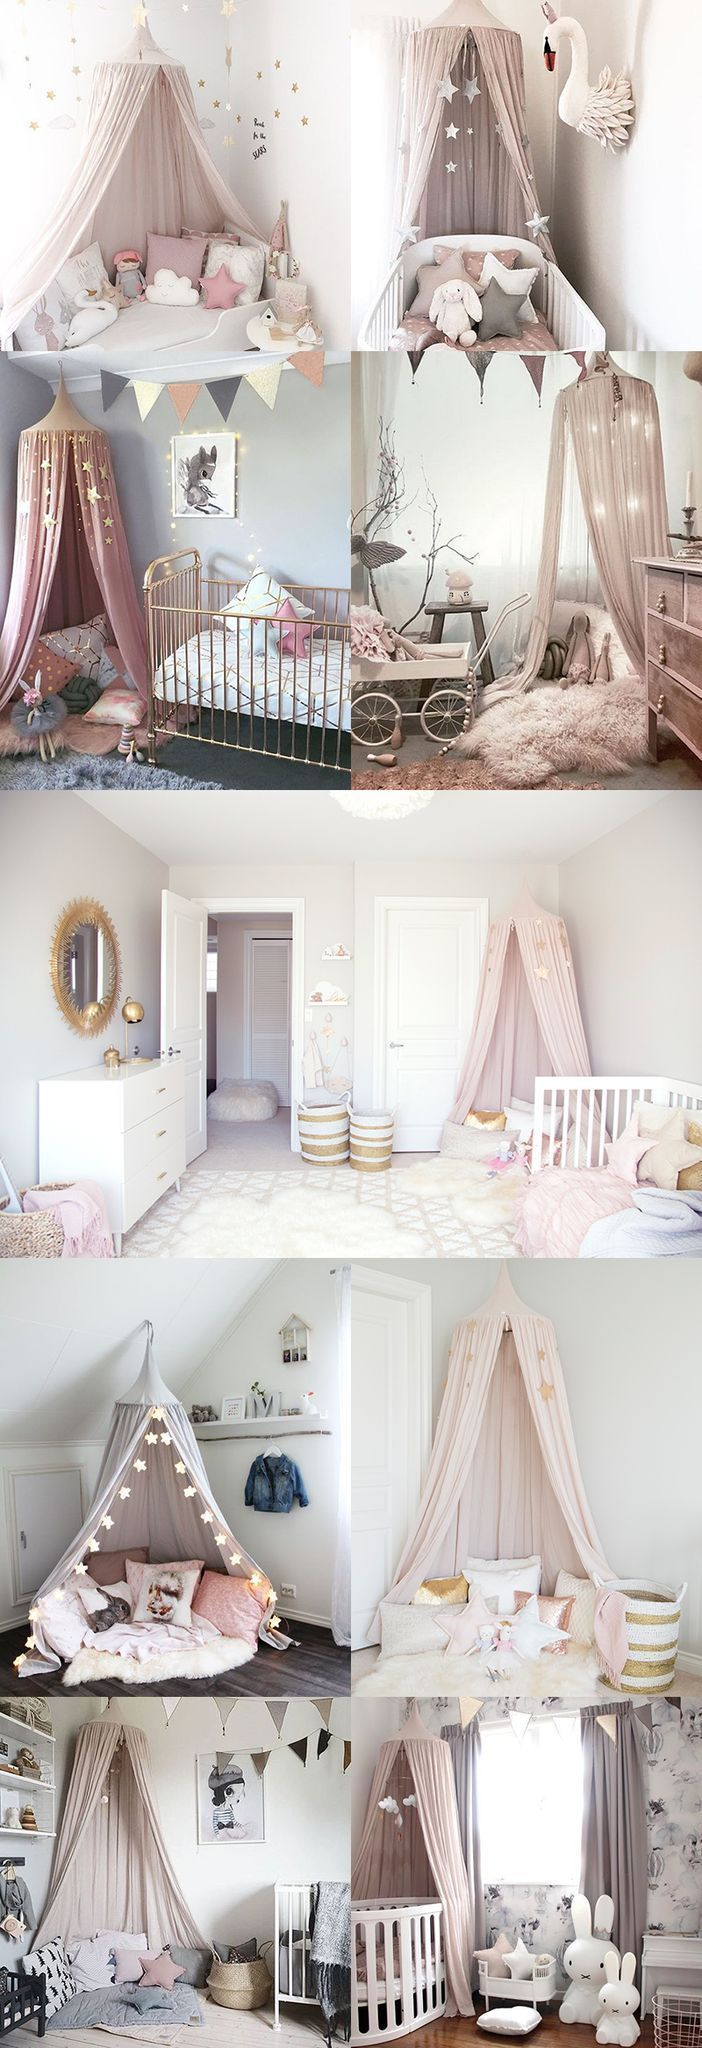 Kids and Baby Room Decor Ideas - Magical Pink Canopy Tent - Light Pink Blush White Gold (Cool Teen)